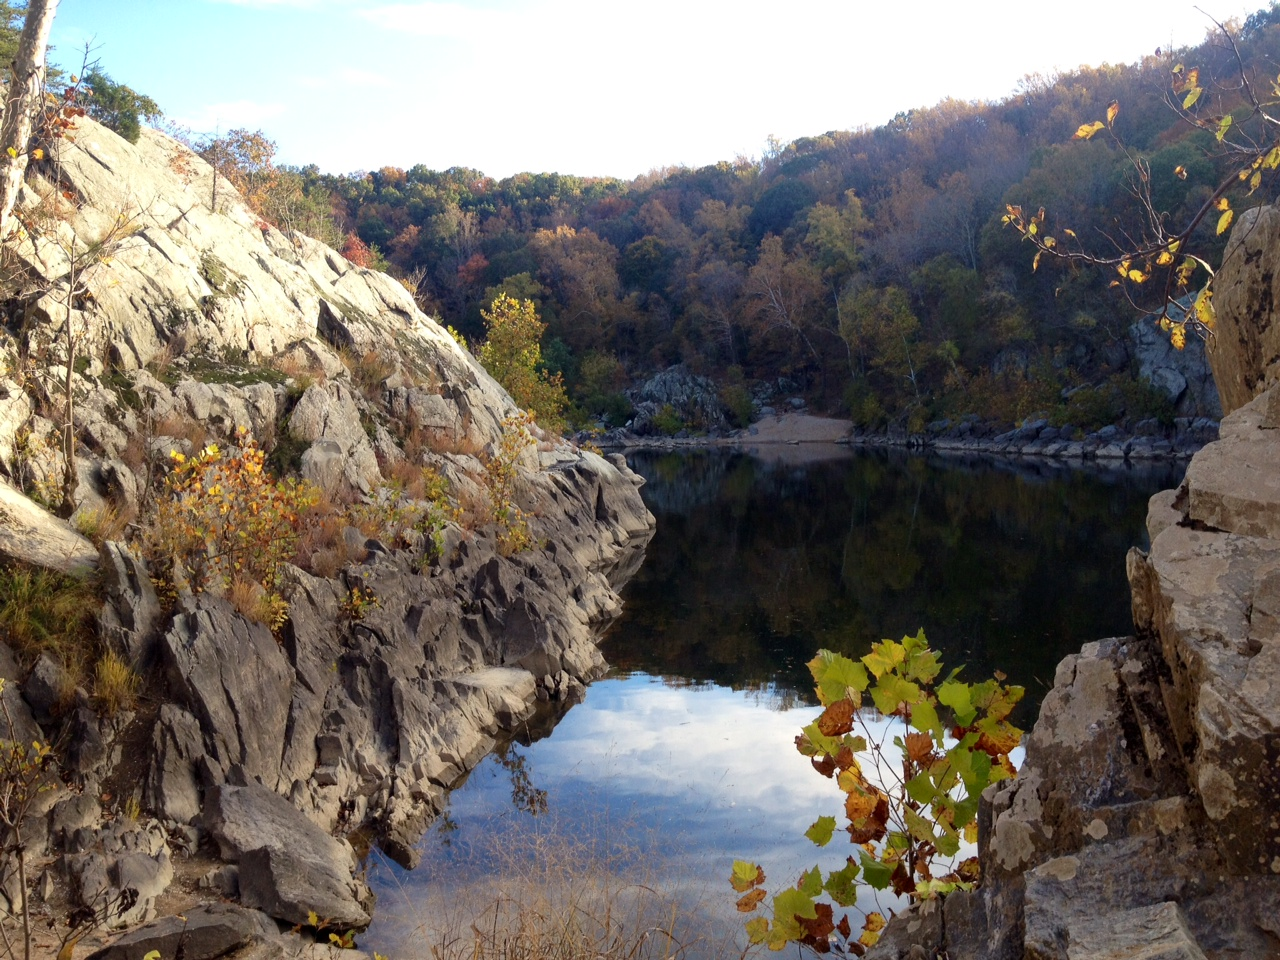 Group works to improve Potomac River's health